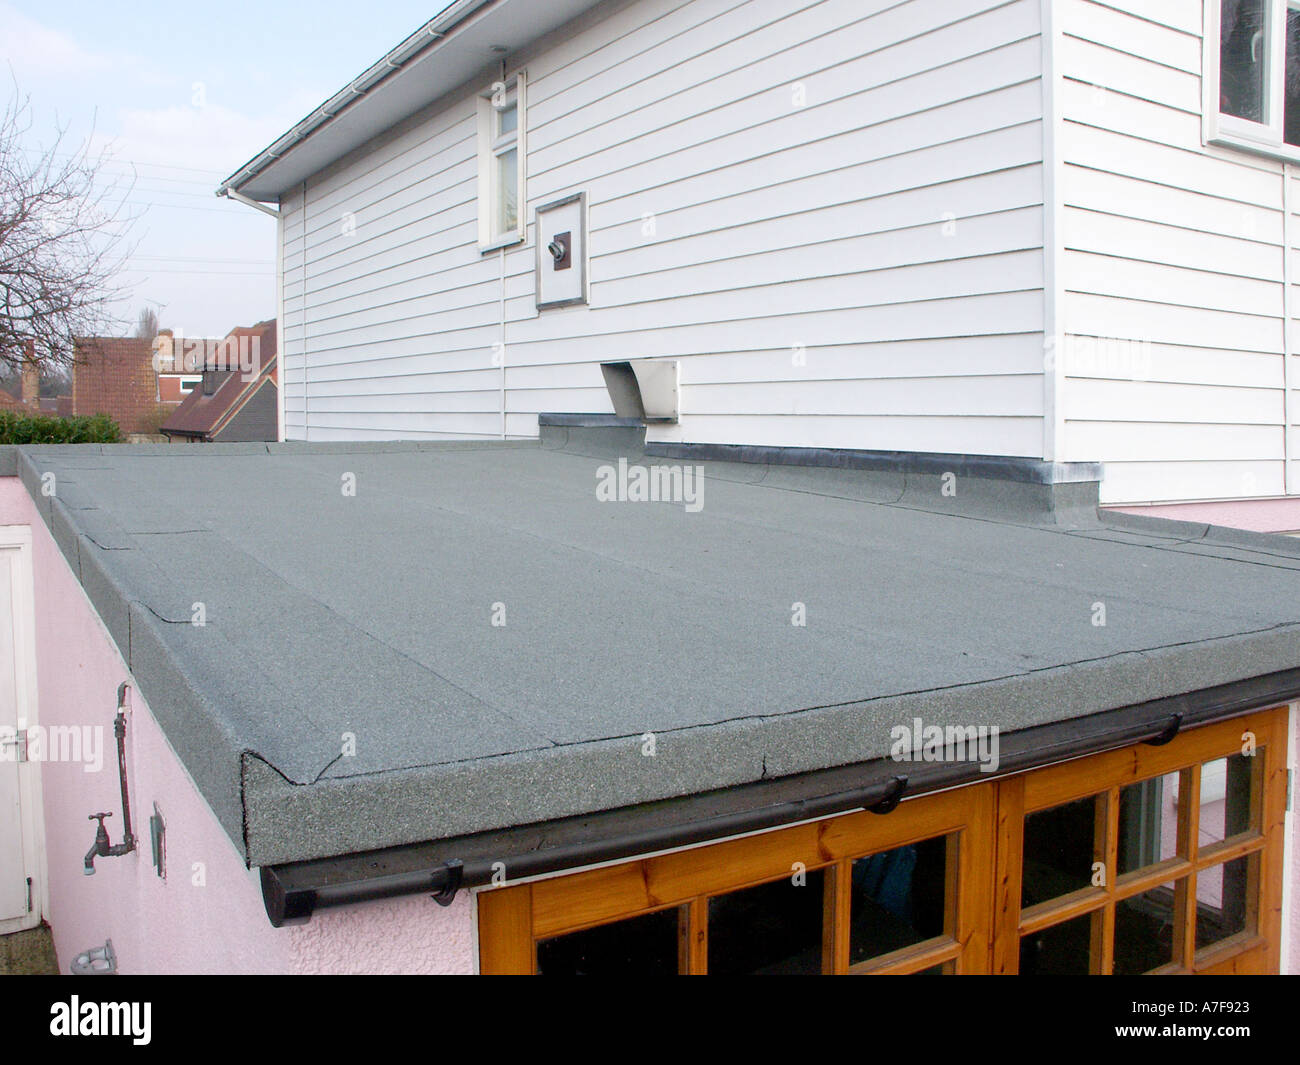 garage roofing garage roof design garage roof design with completed bituminous built up felt roofing replacing existing defective covering on attached car garage to domestic